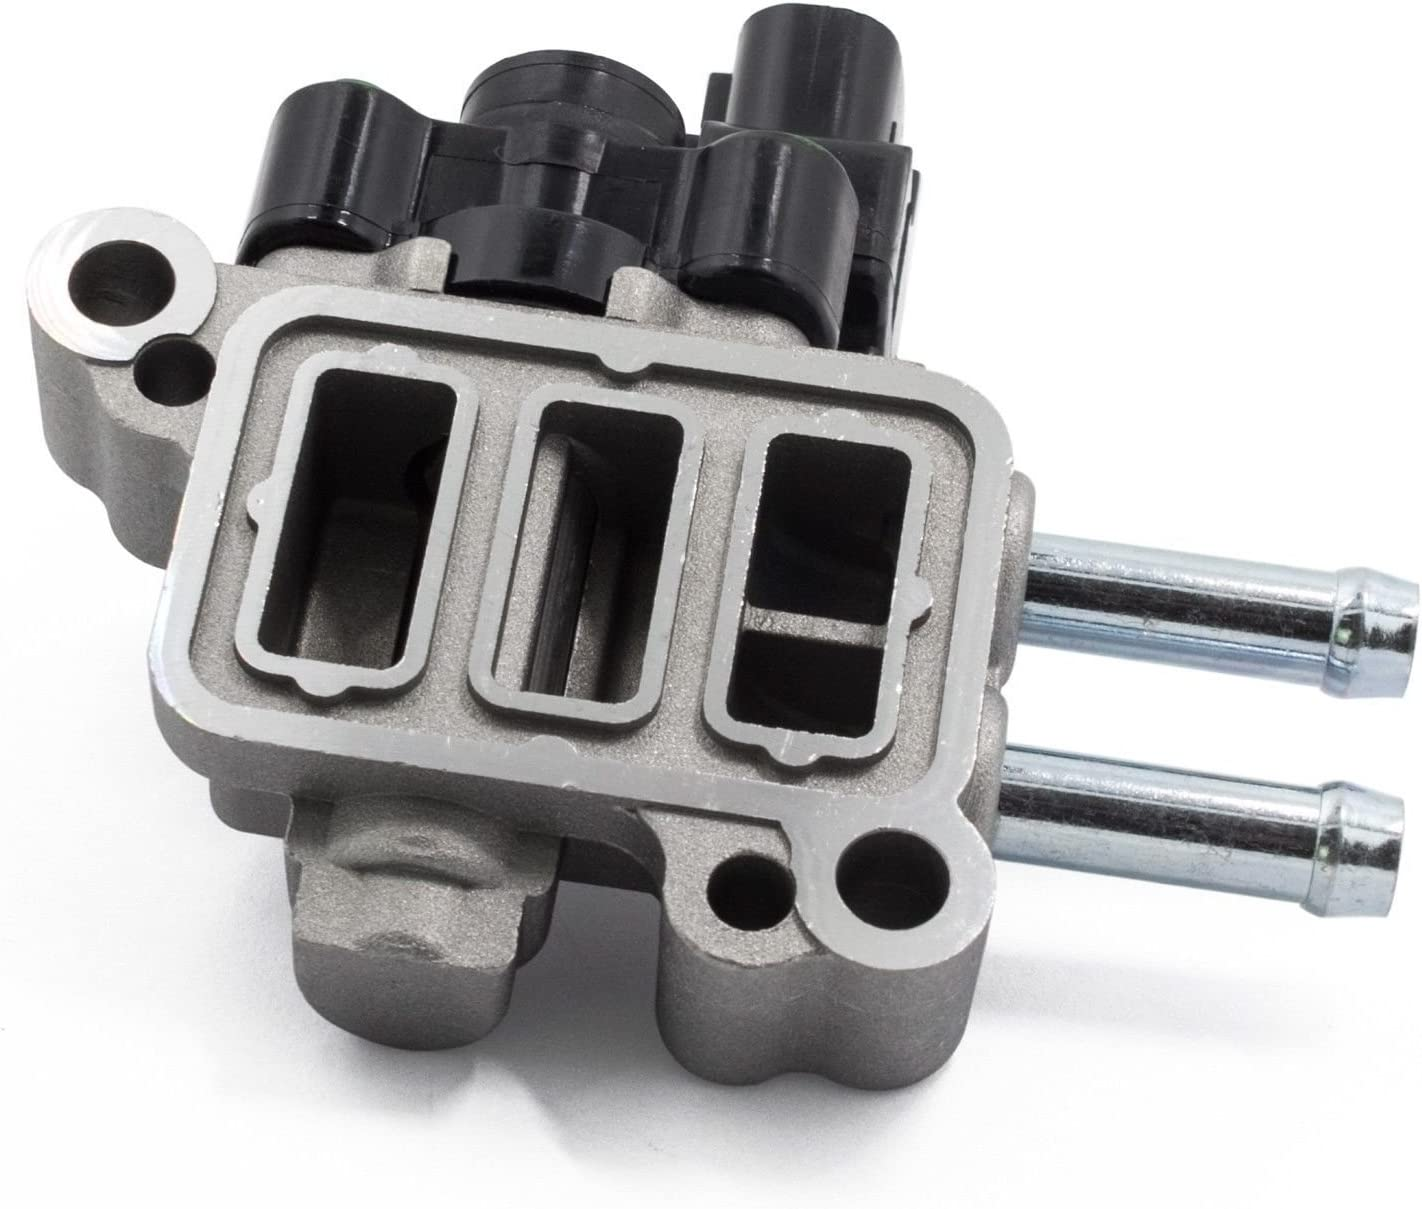 NEW Idle Air Control Valve 2 Port For 98-02 Honda Accord 2.3 AC474 36460-PAA-A01